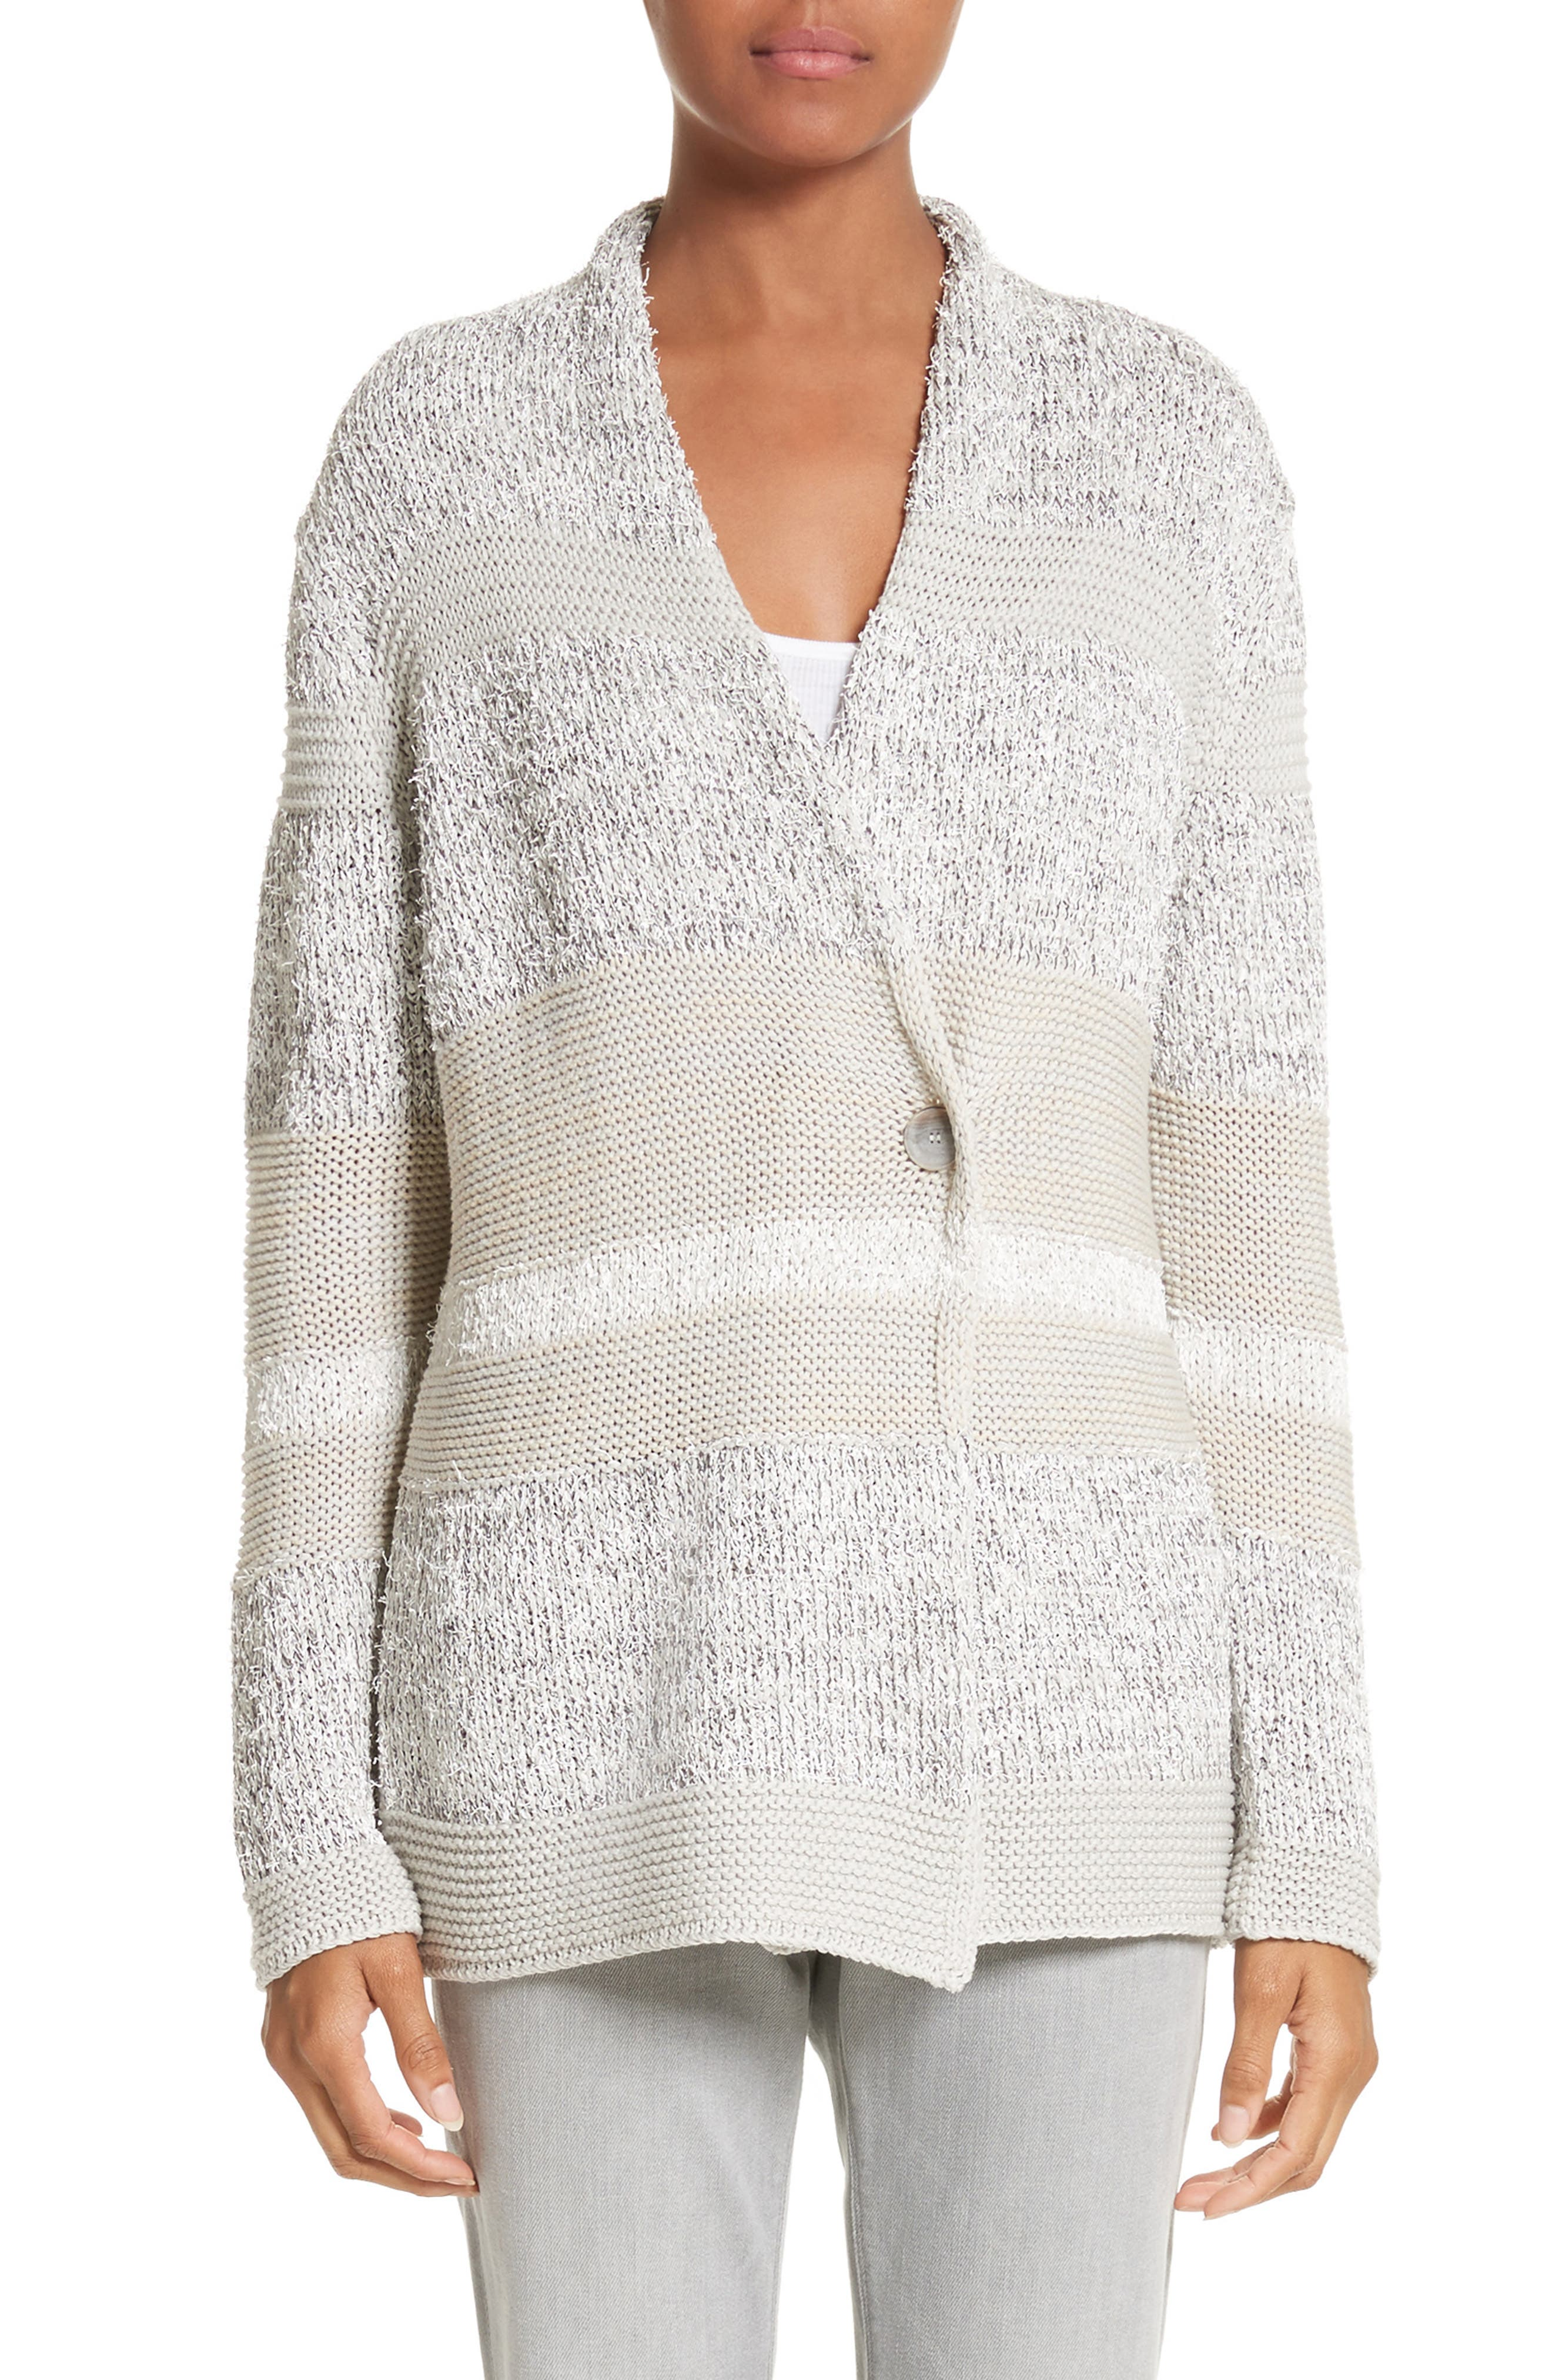 Main Image - Fabiana Filippi Stripe Metallic Knit Cardigan